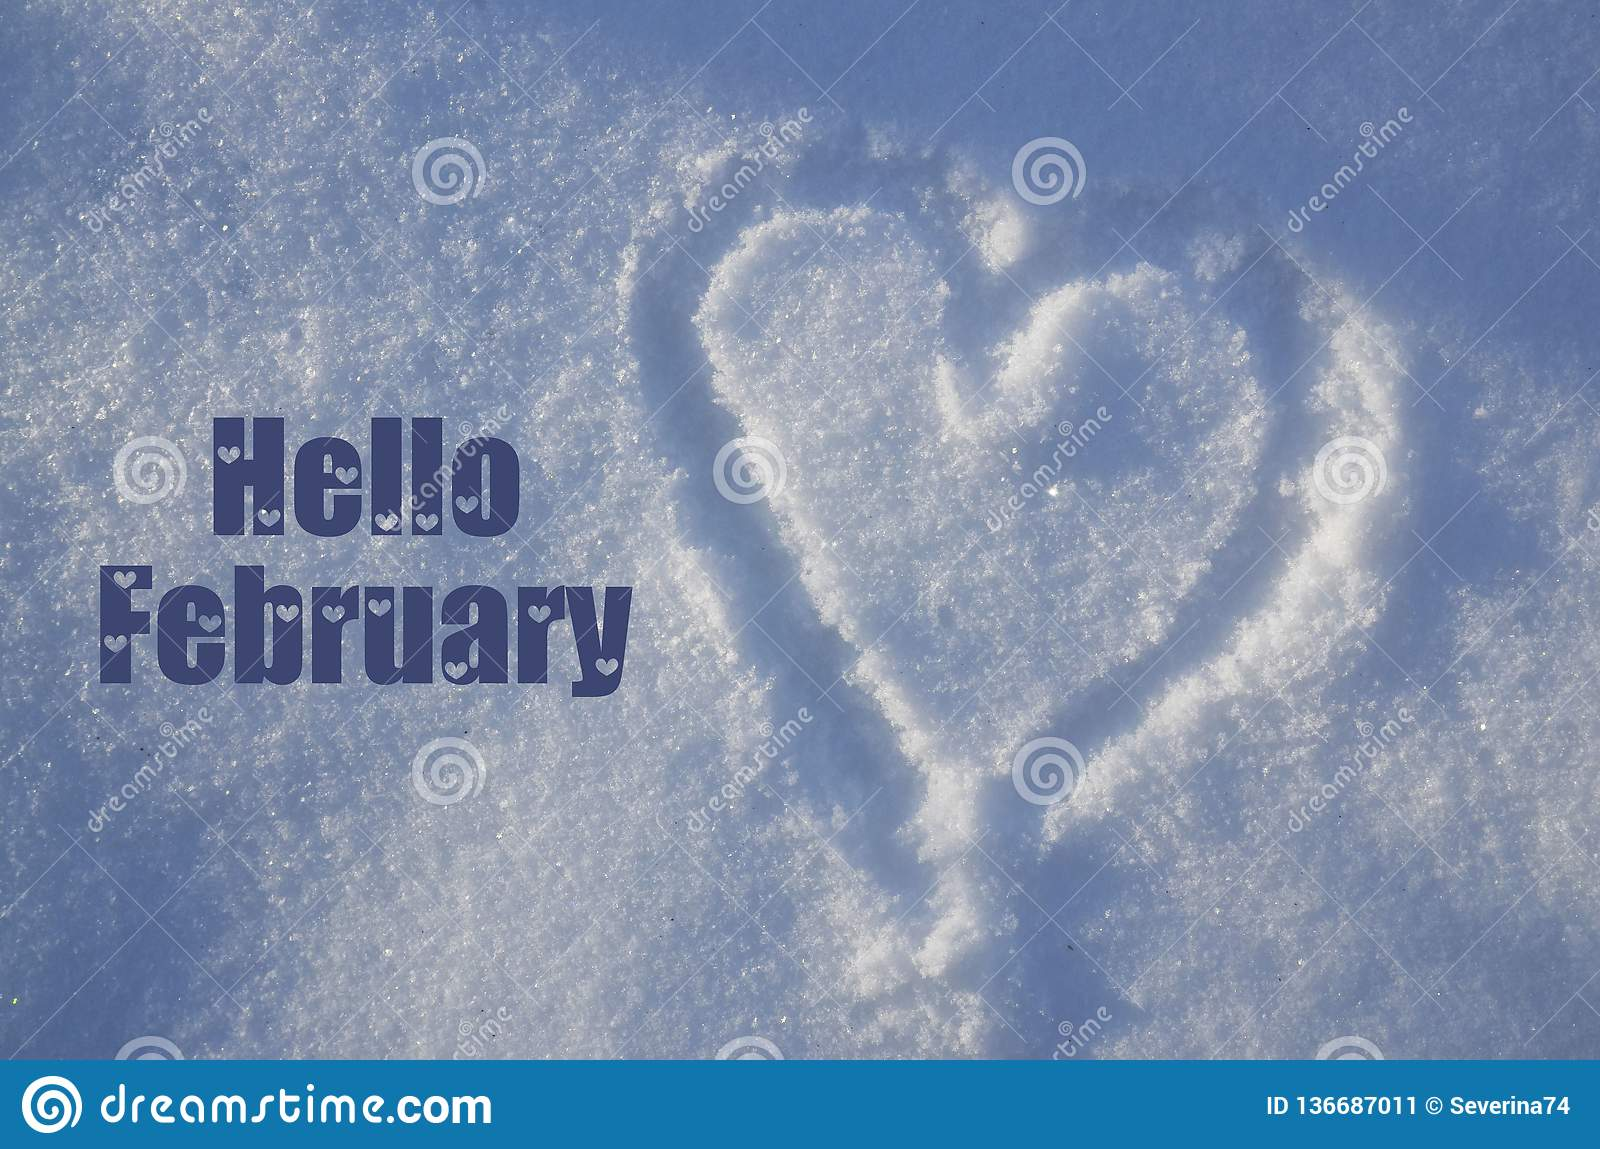 Hello February greeting card with heart drawing on natural white snow on a sunny day.Winter season or Valentines Day concept.